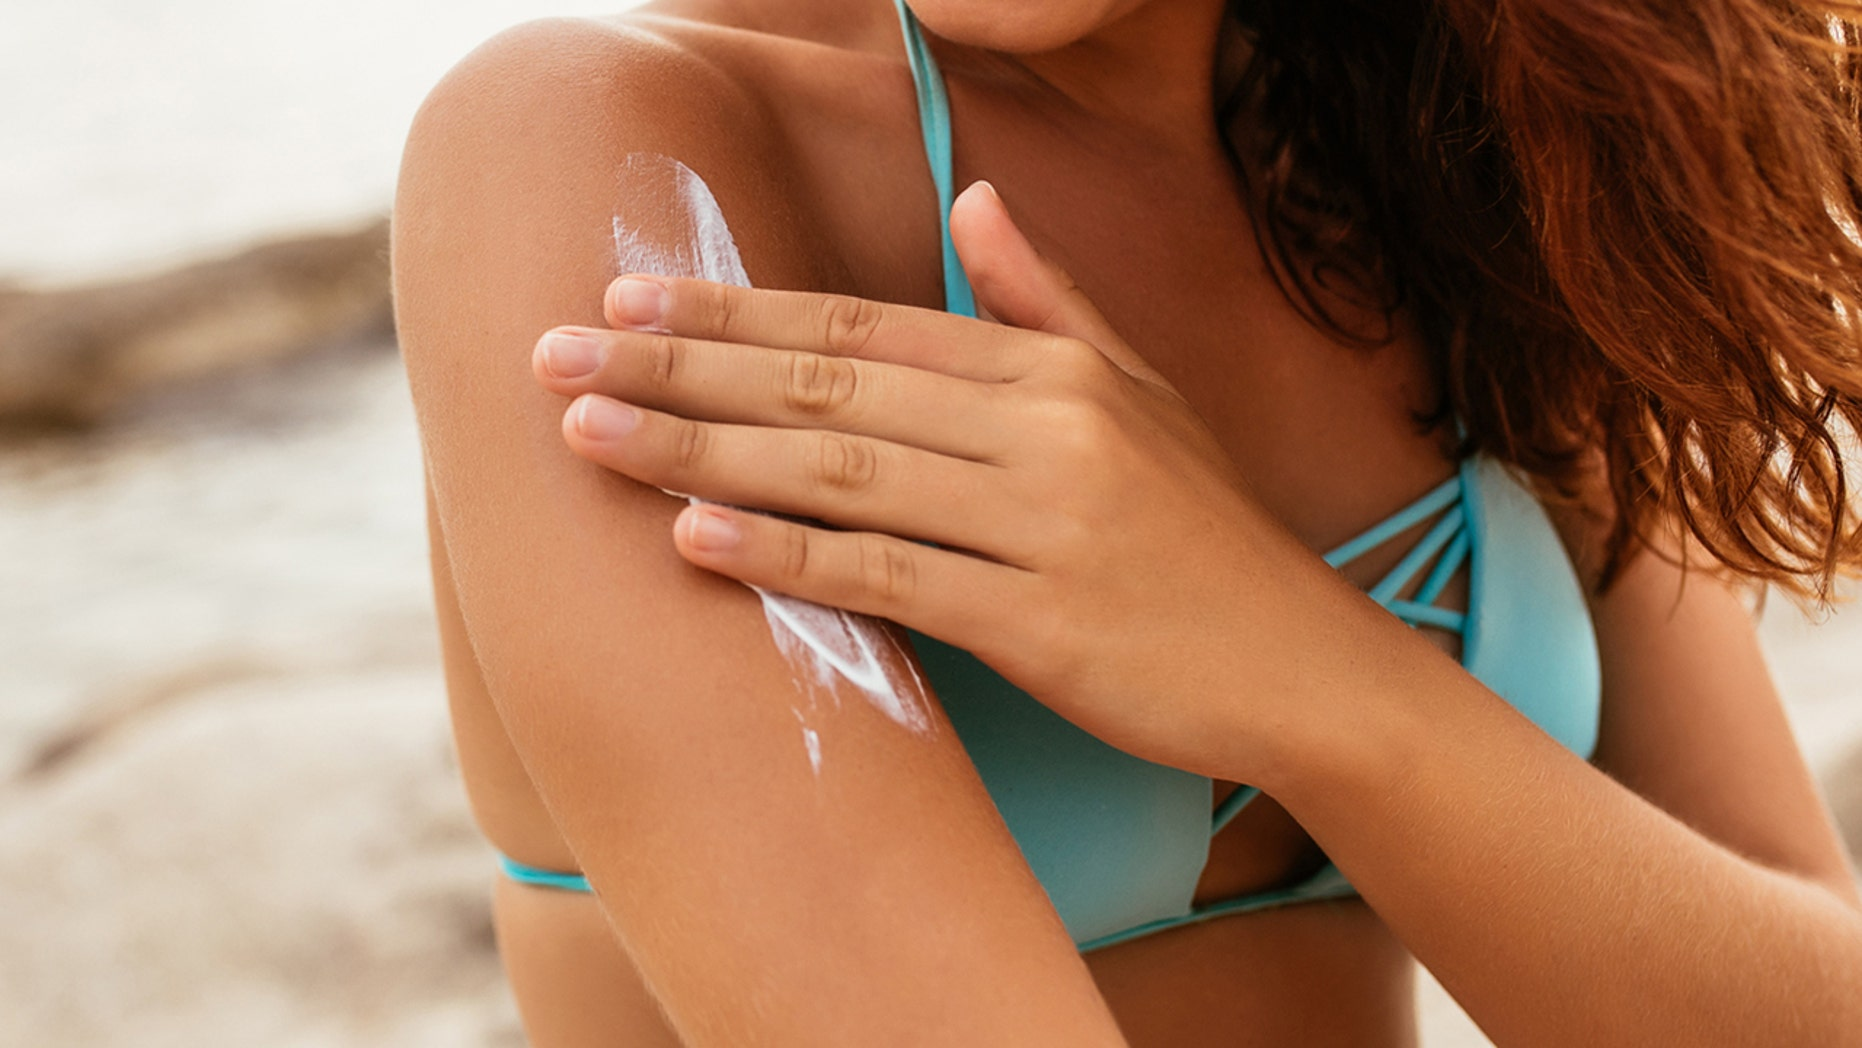 Certain resorts in the U.S., Mexico and the Caribbean have installed booths that allow for hands-free application of sunscreen — and they sometimes charge $5 per session.